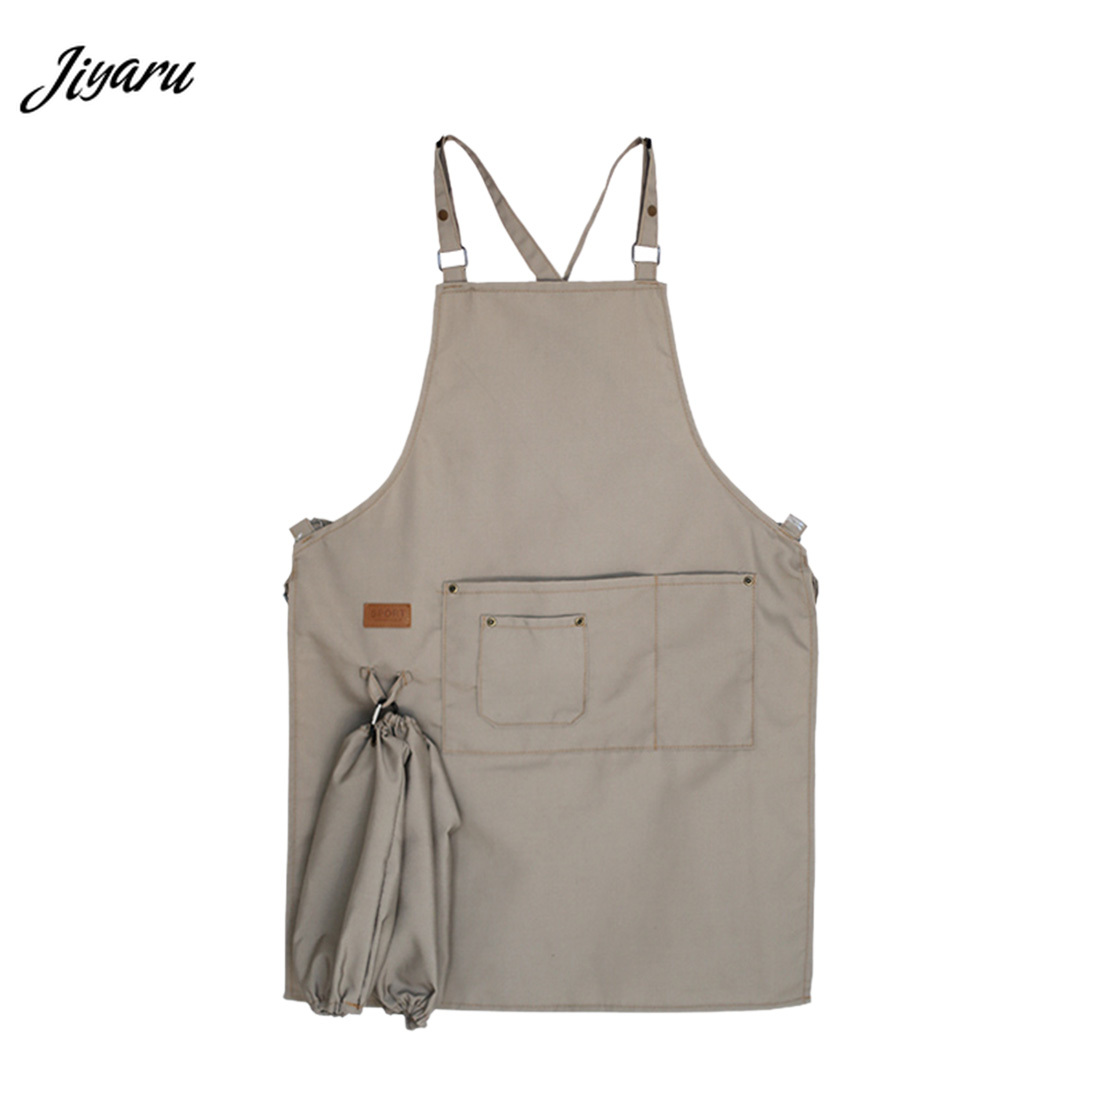 Hot Selling Kitchen Cooking Sleeveless Food Service Bakery Food Service Cook Wear Chef Jacket Restaurant Chef Uniform